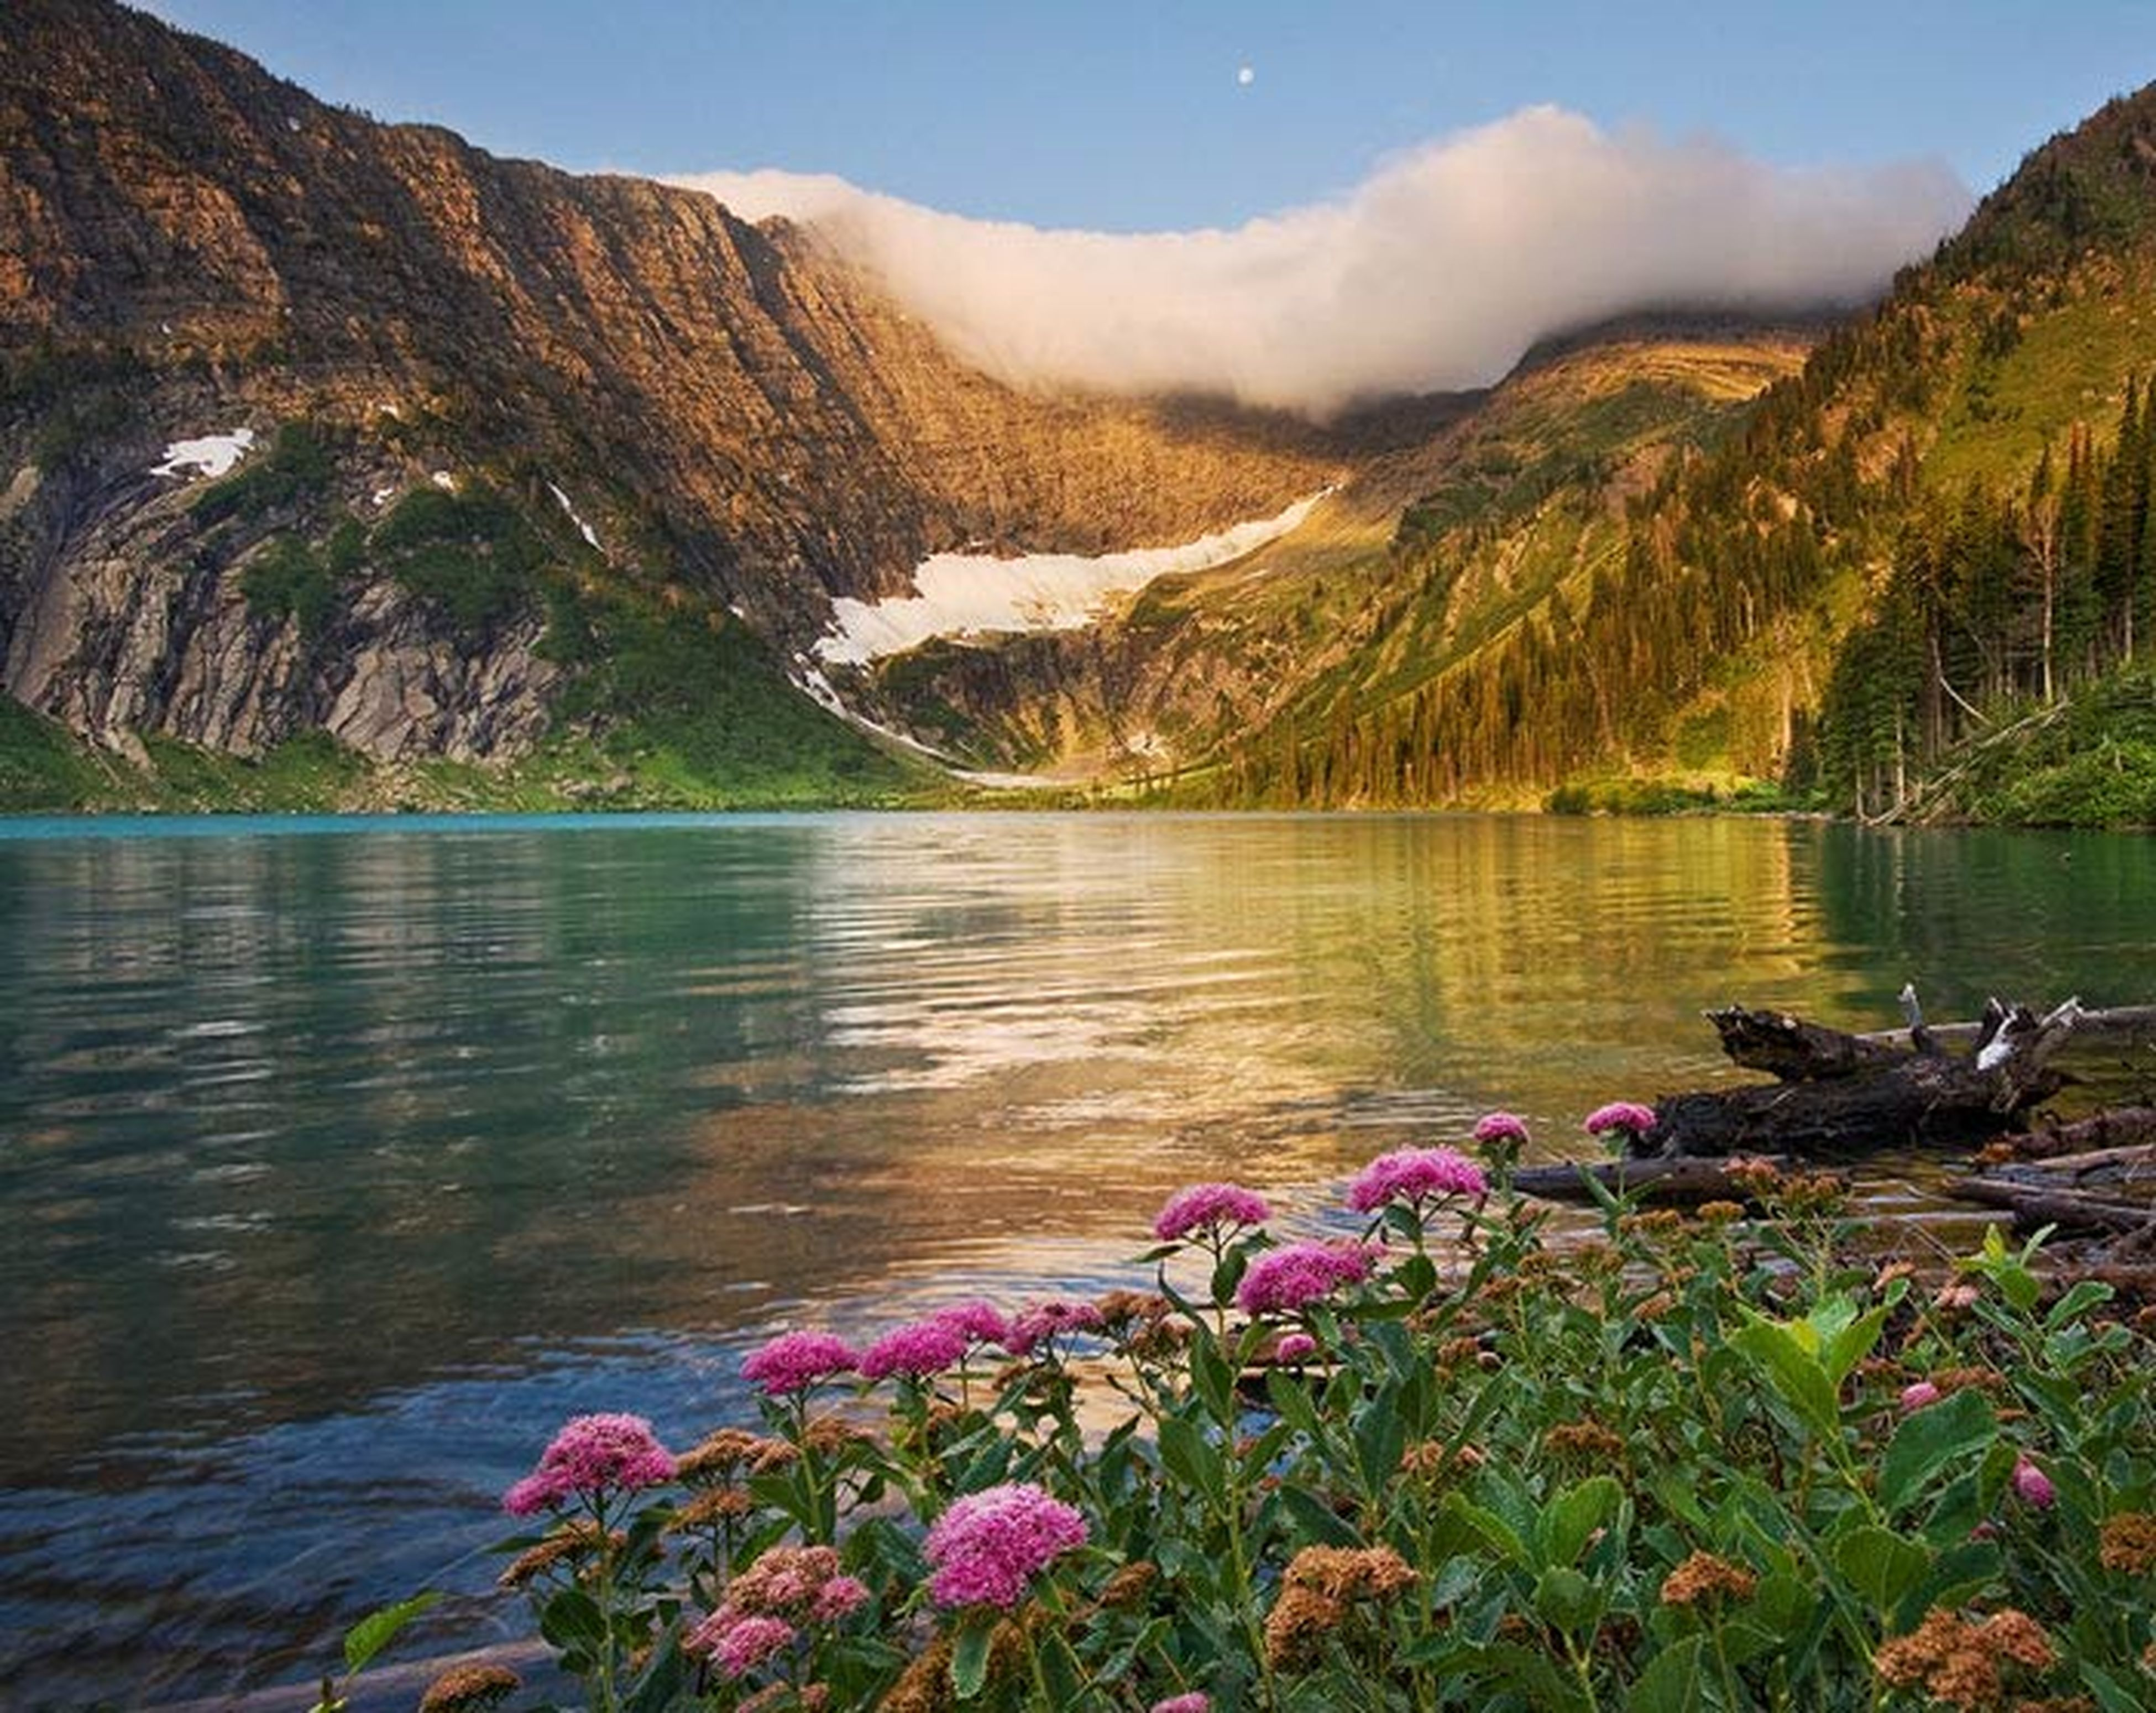 mountain, water, tranquil scene, lake, beauty in nature, tranquility, flower, scenics, nature, mountain range, growth, plant, sky, idyllic, tree, reflection, day, river, lakeshore, non-urban scene